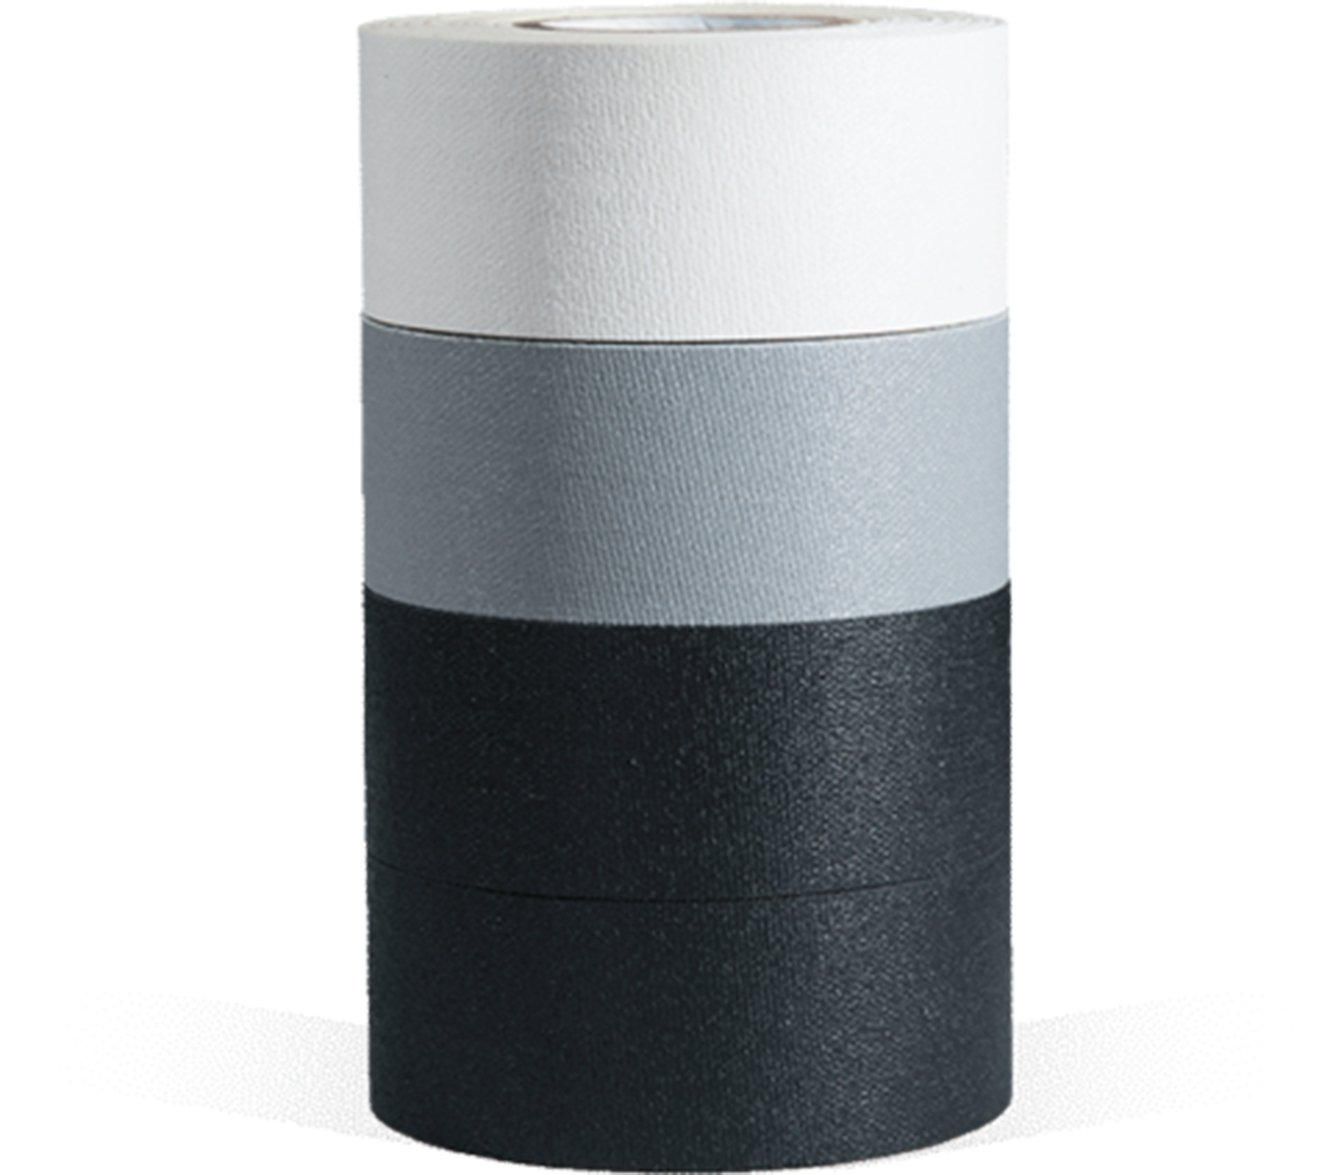 microGAFFER Tape 8 Yards x 1''- Multi Pack of 4 Rolls, Classic Colors (Black, Black, Gray, White) (MADE IN USA) by Microgaffer Classic (Image #2)